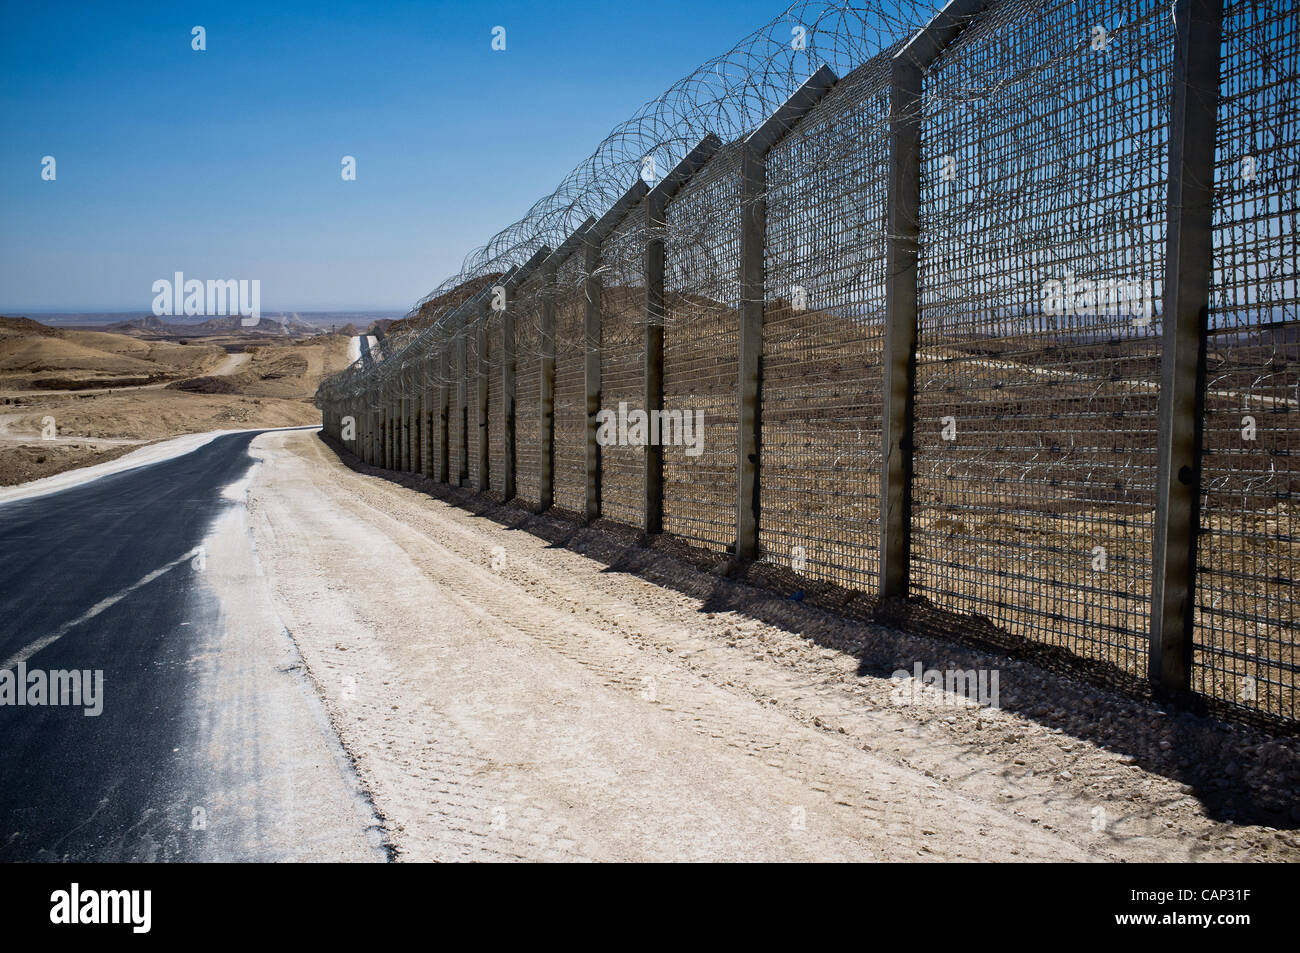 New Hour Glass Israel Egypt Border Fence Is 5 Meters High And Made Stock Photo Alamy